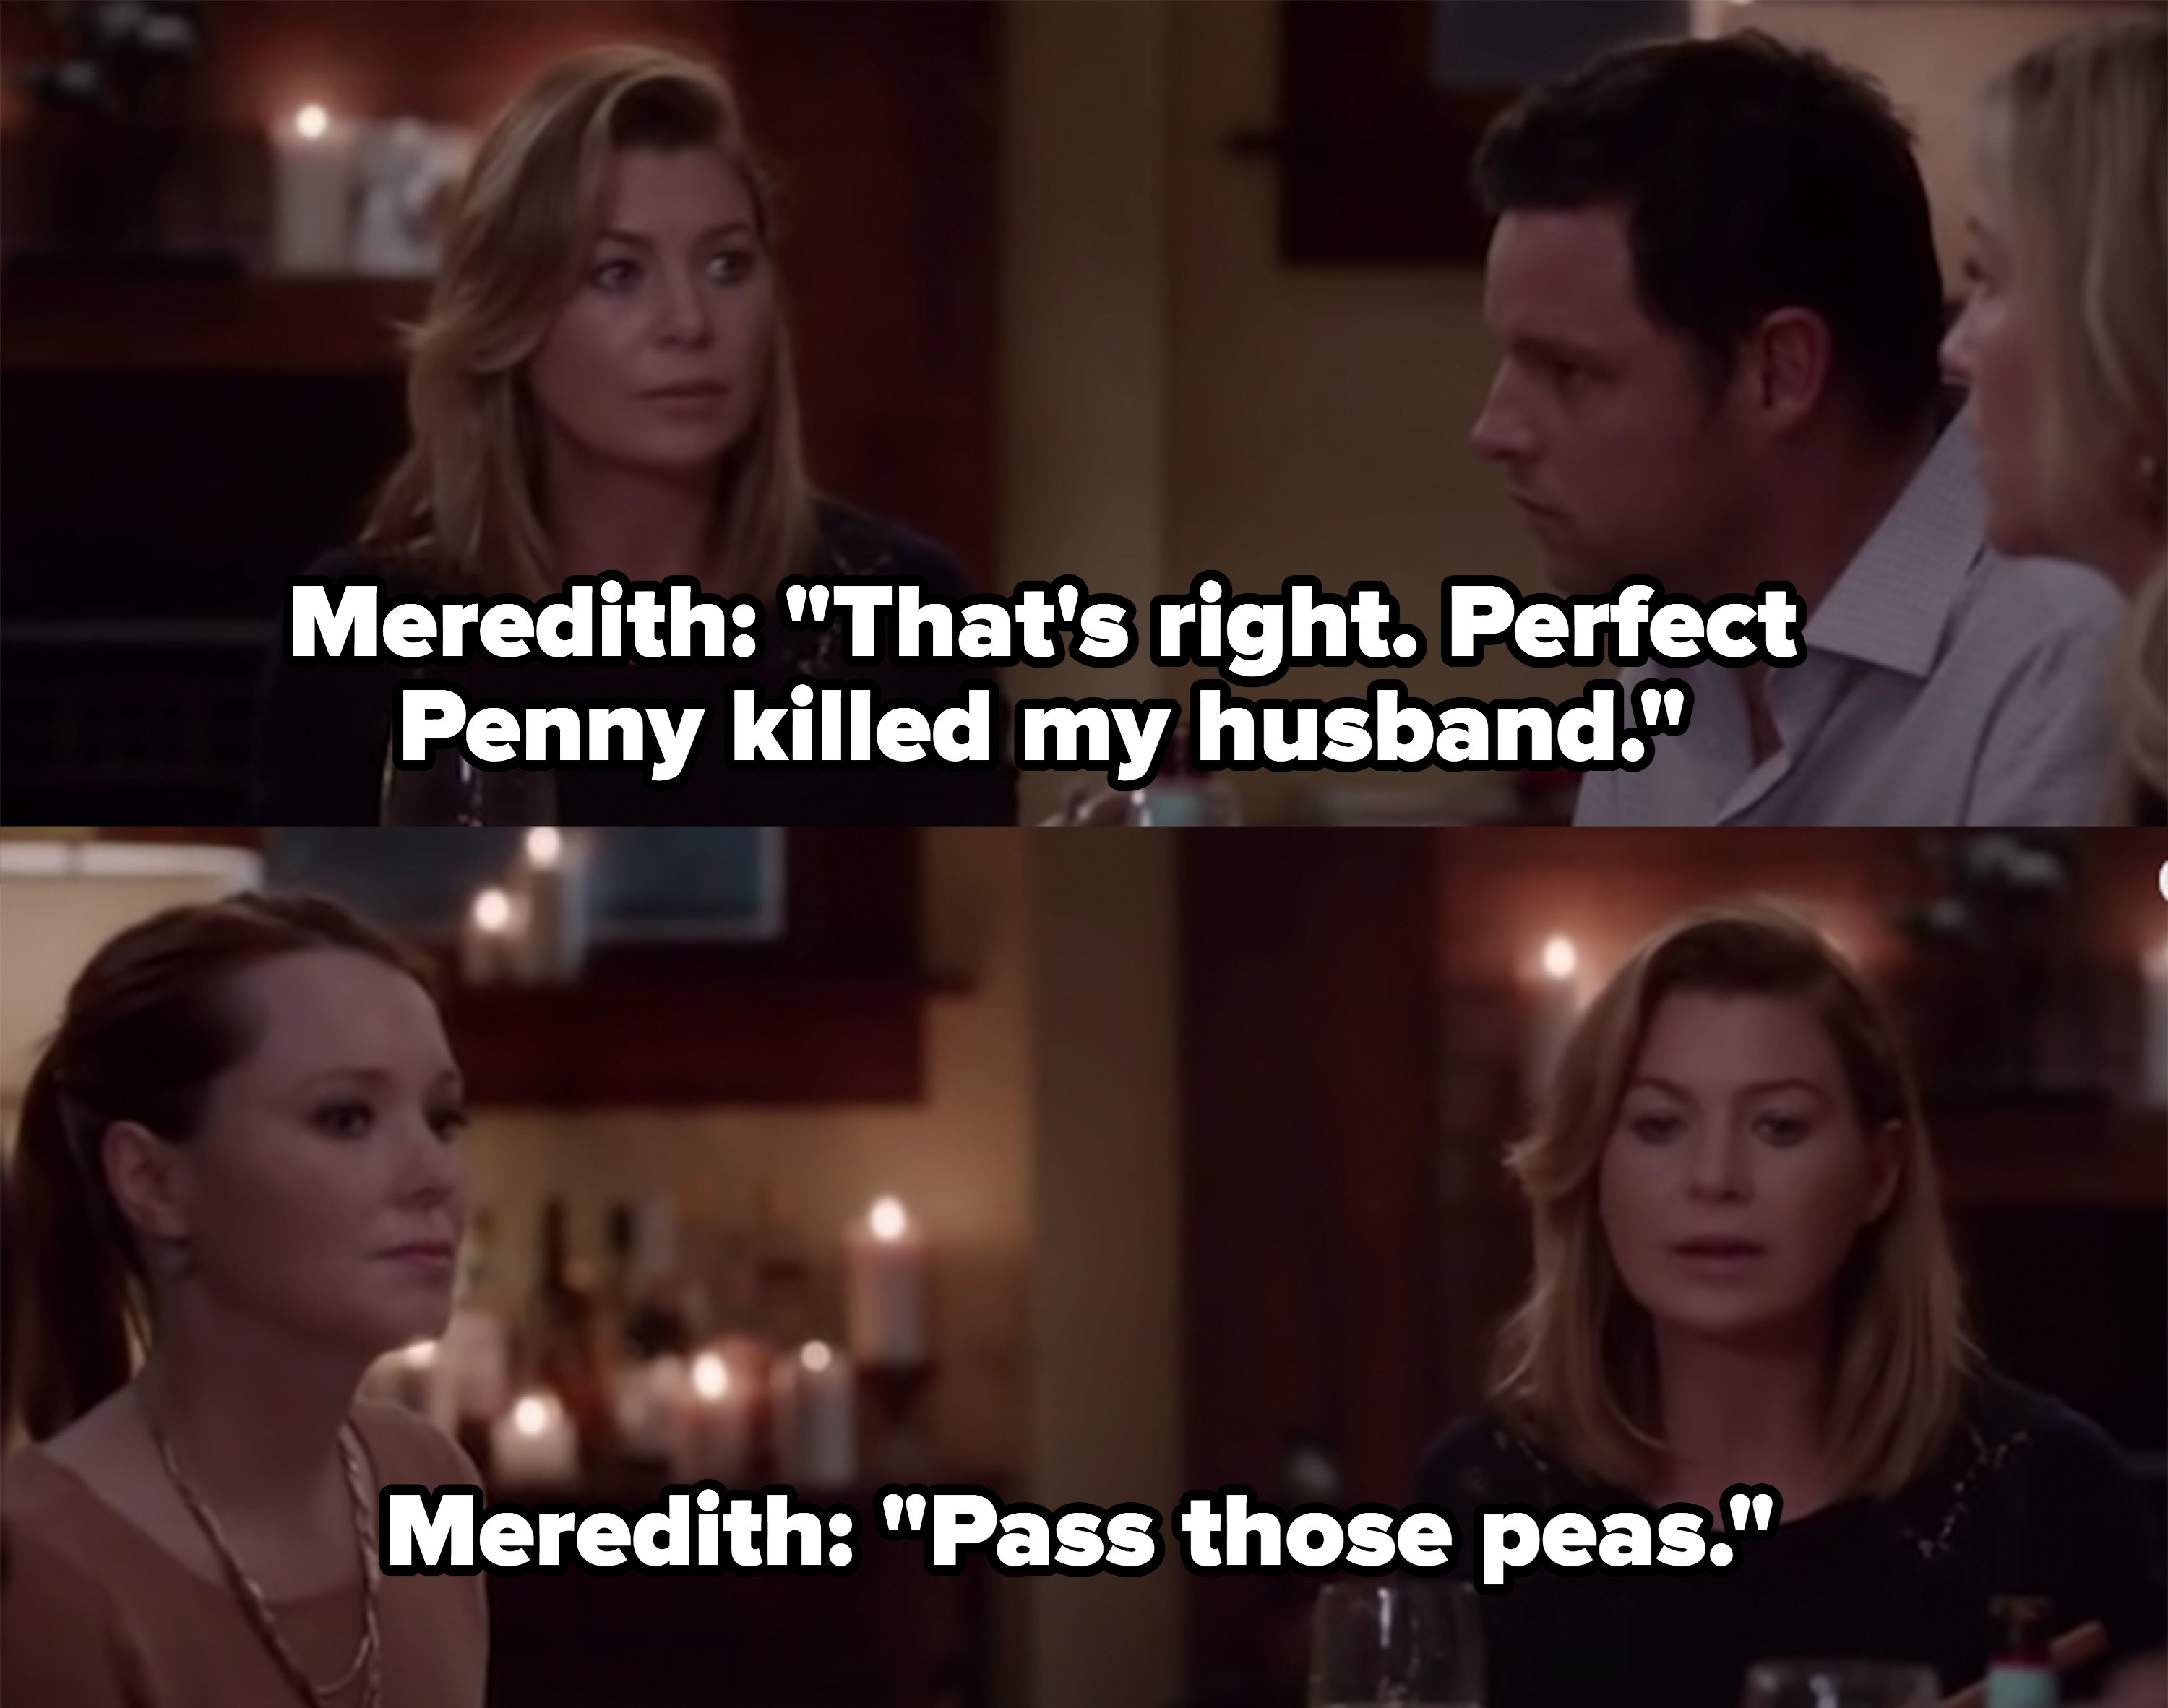 "Meredith: ""That's right, perfect Penny killed my husband...pass those peas"""